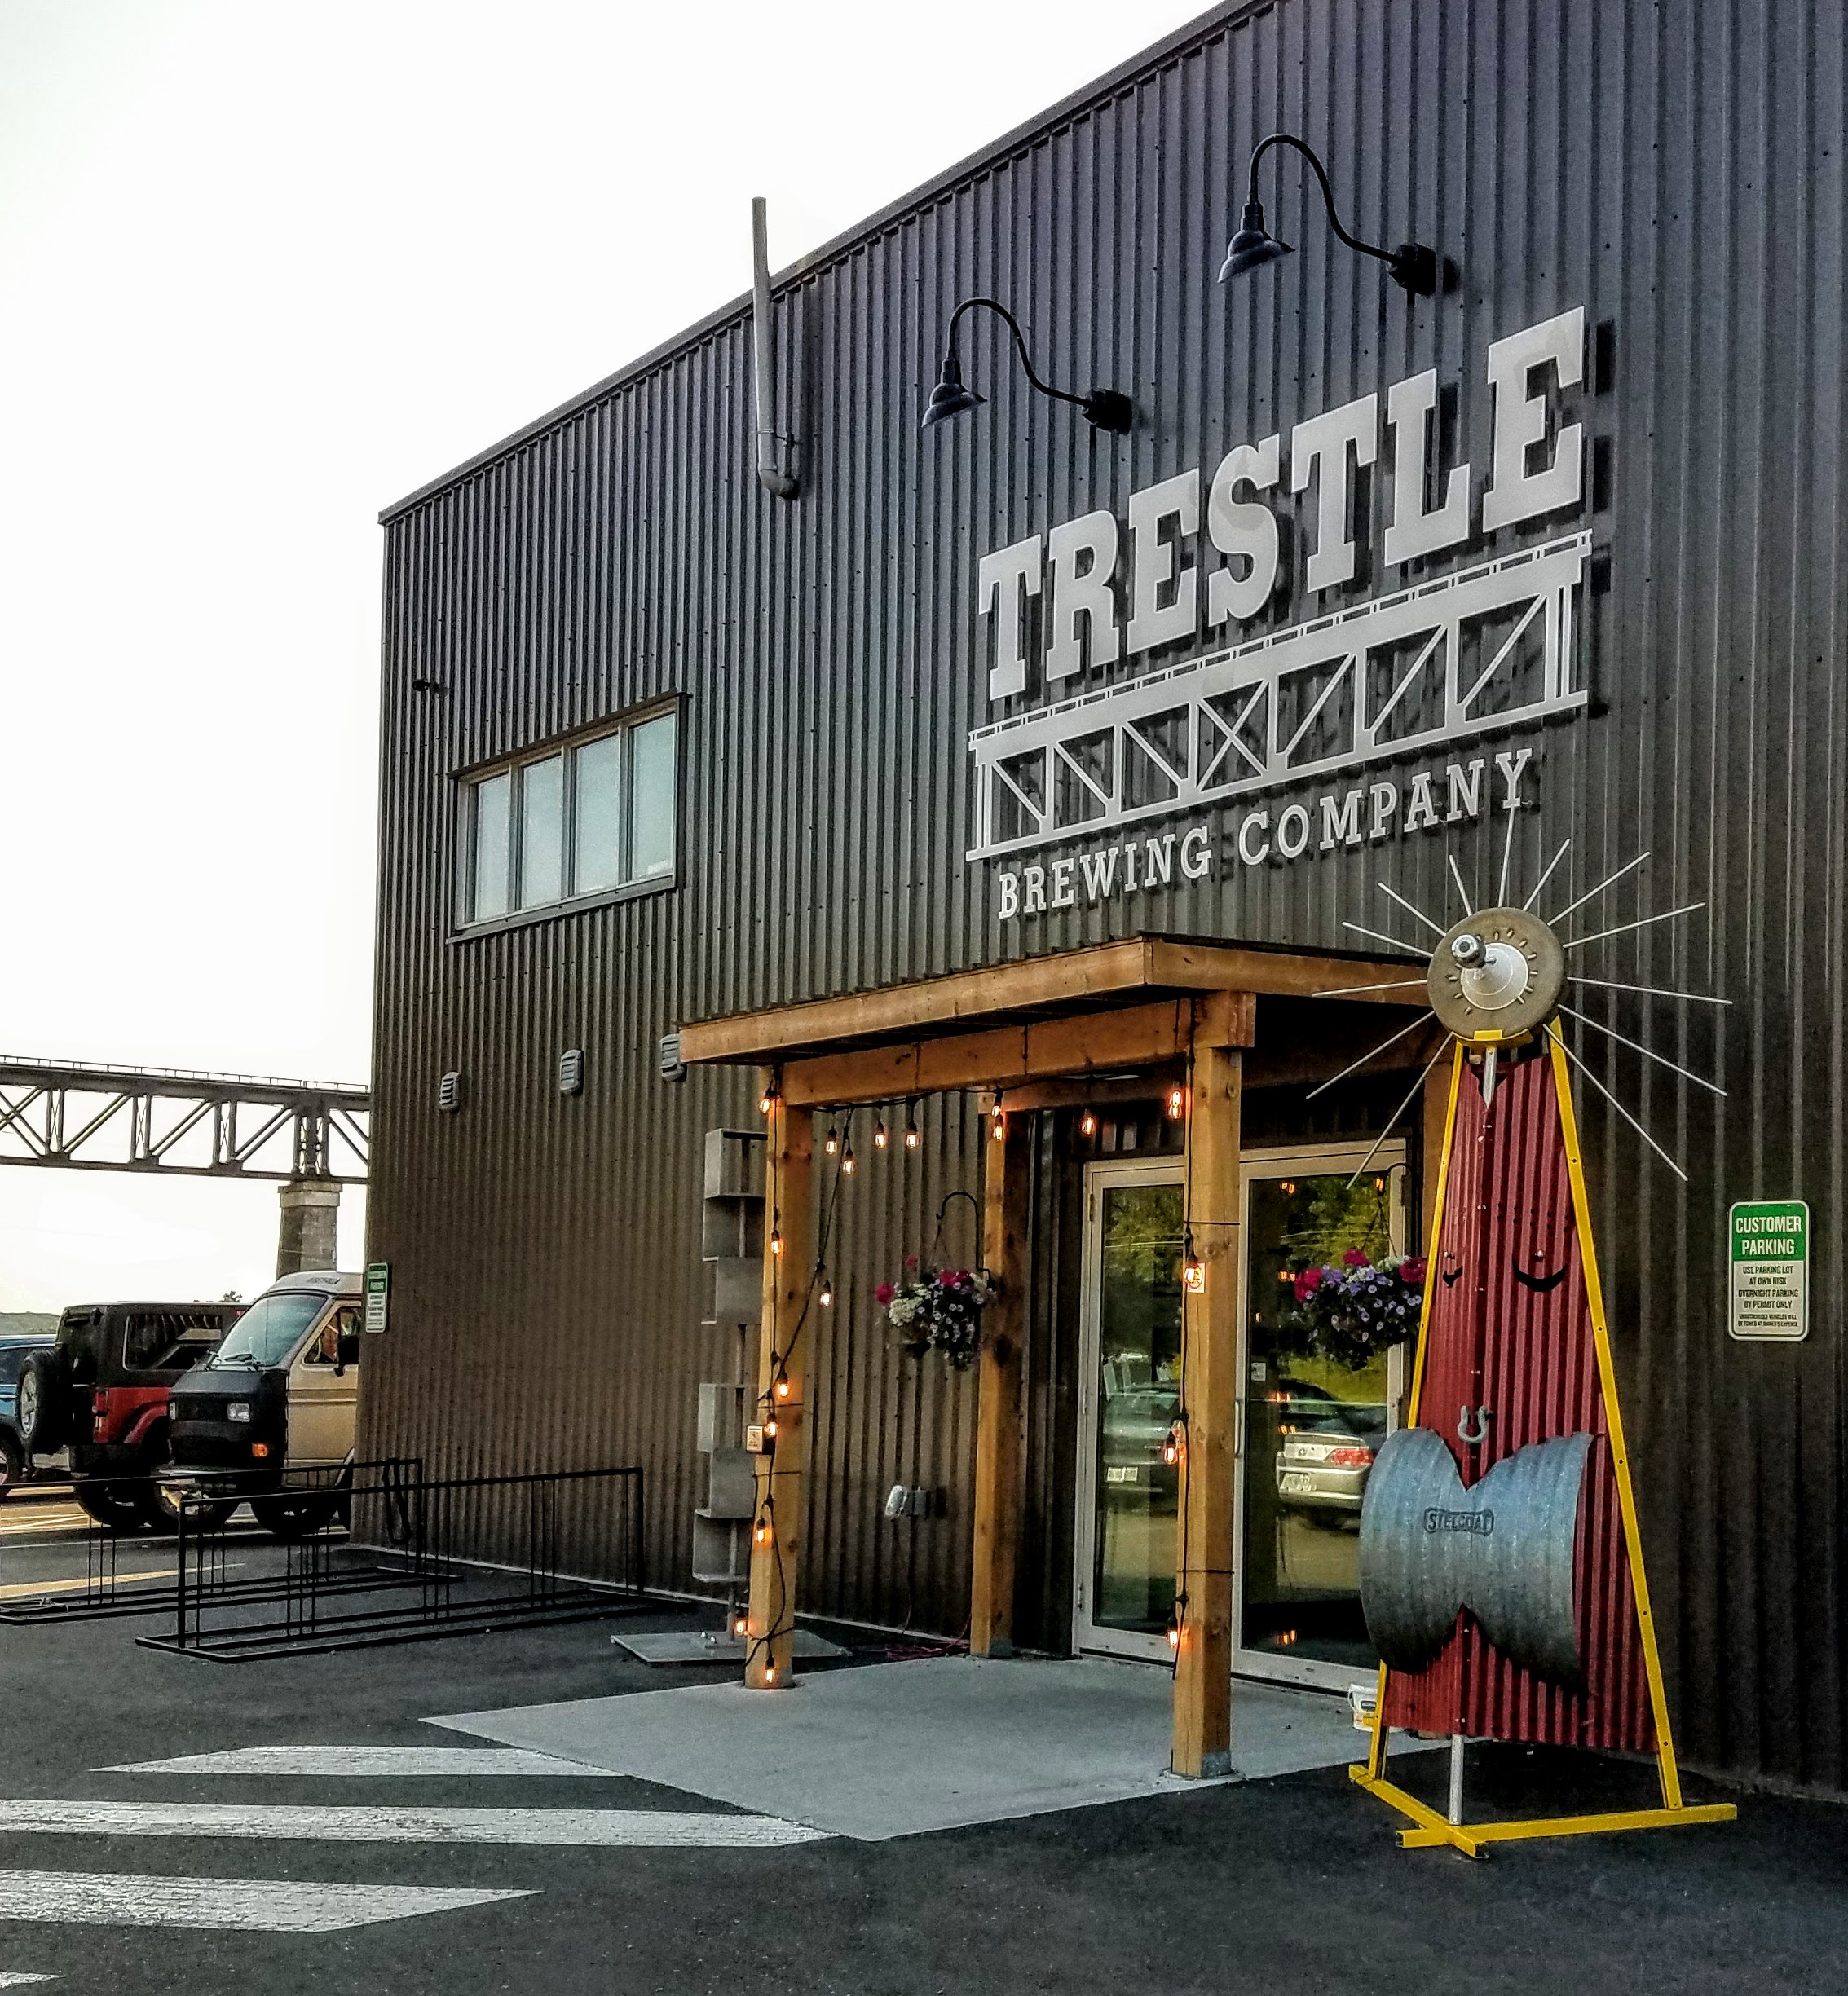 Had to check out the new Trestle Brewing Company